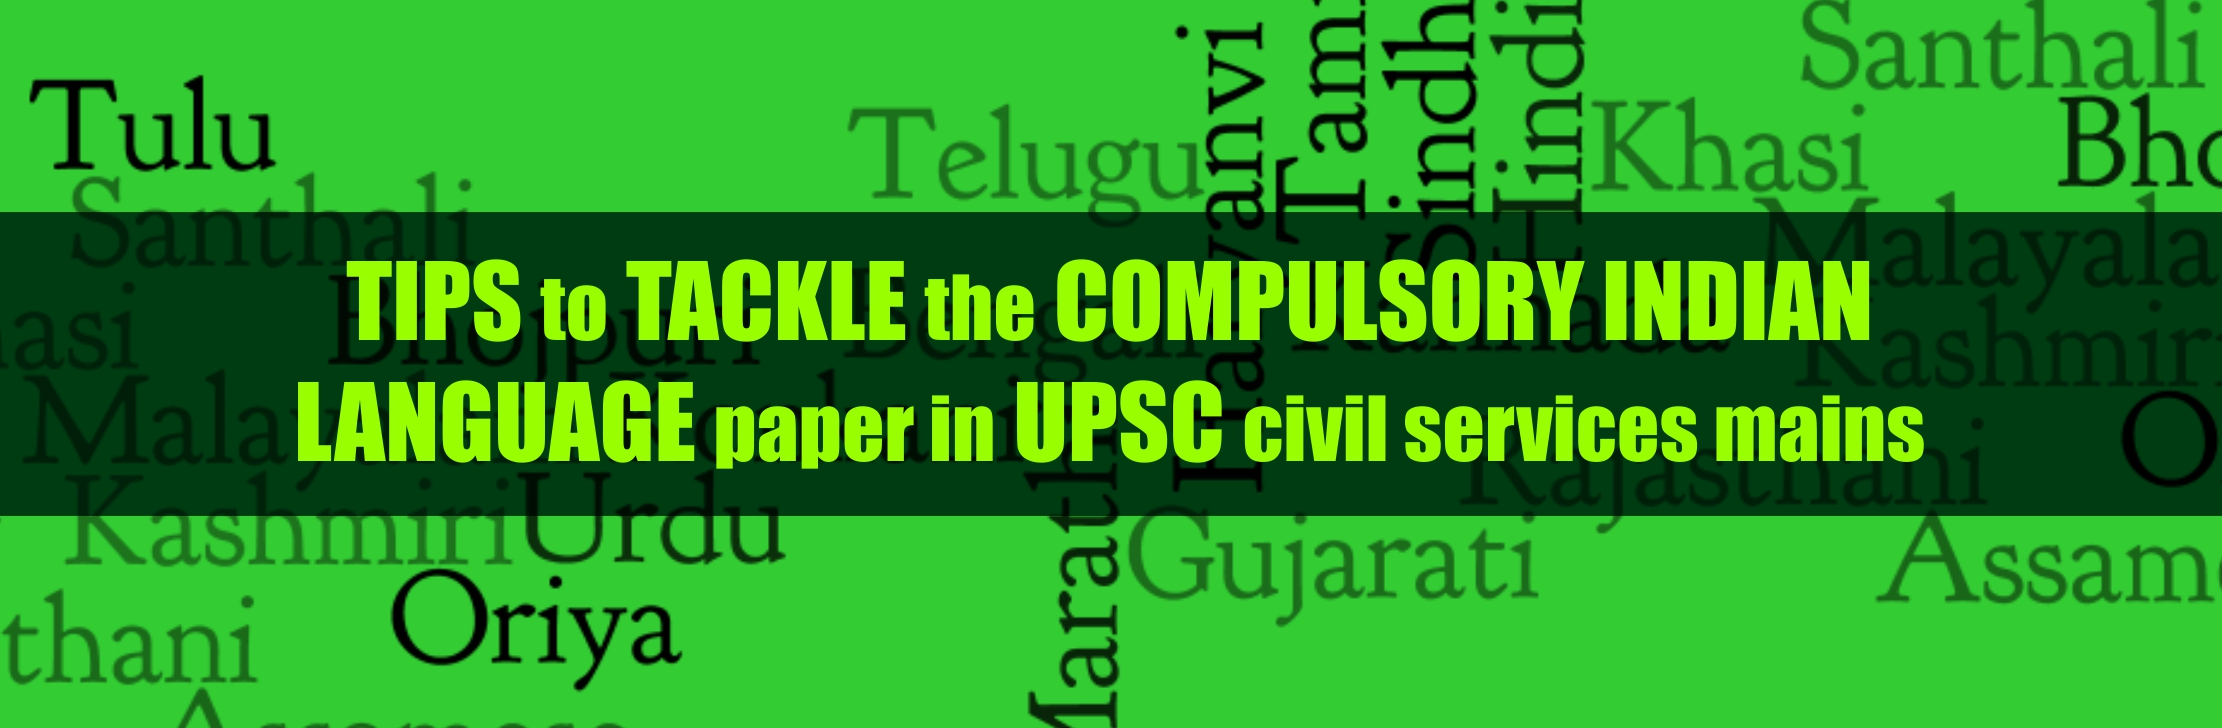 Tips to tackle the compulsory Indian language paper in UPSC civil services mains